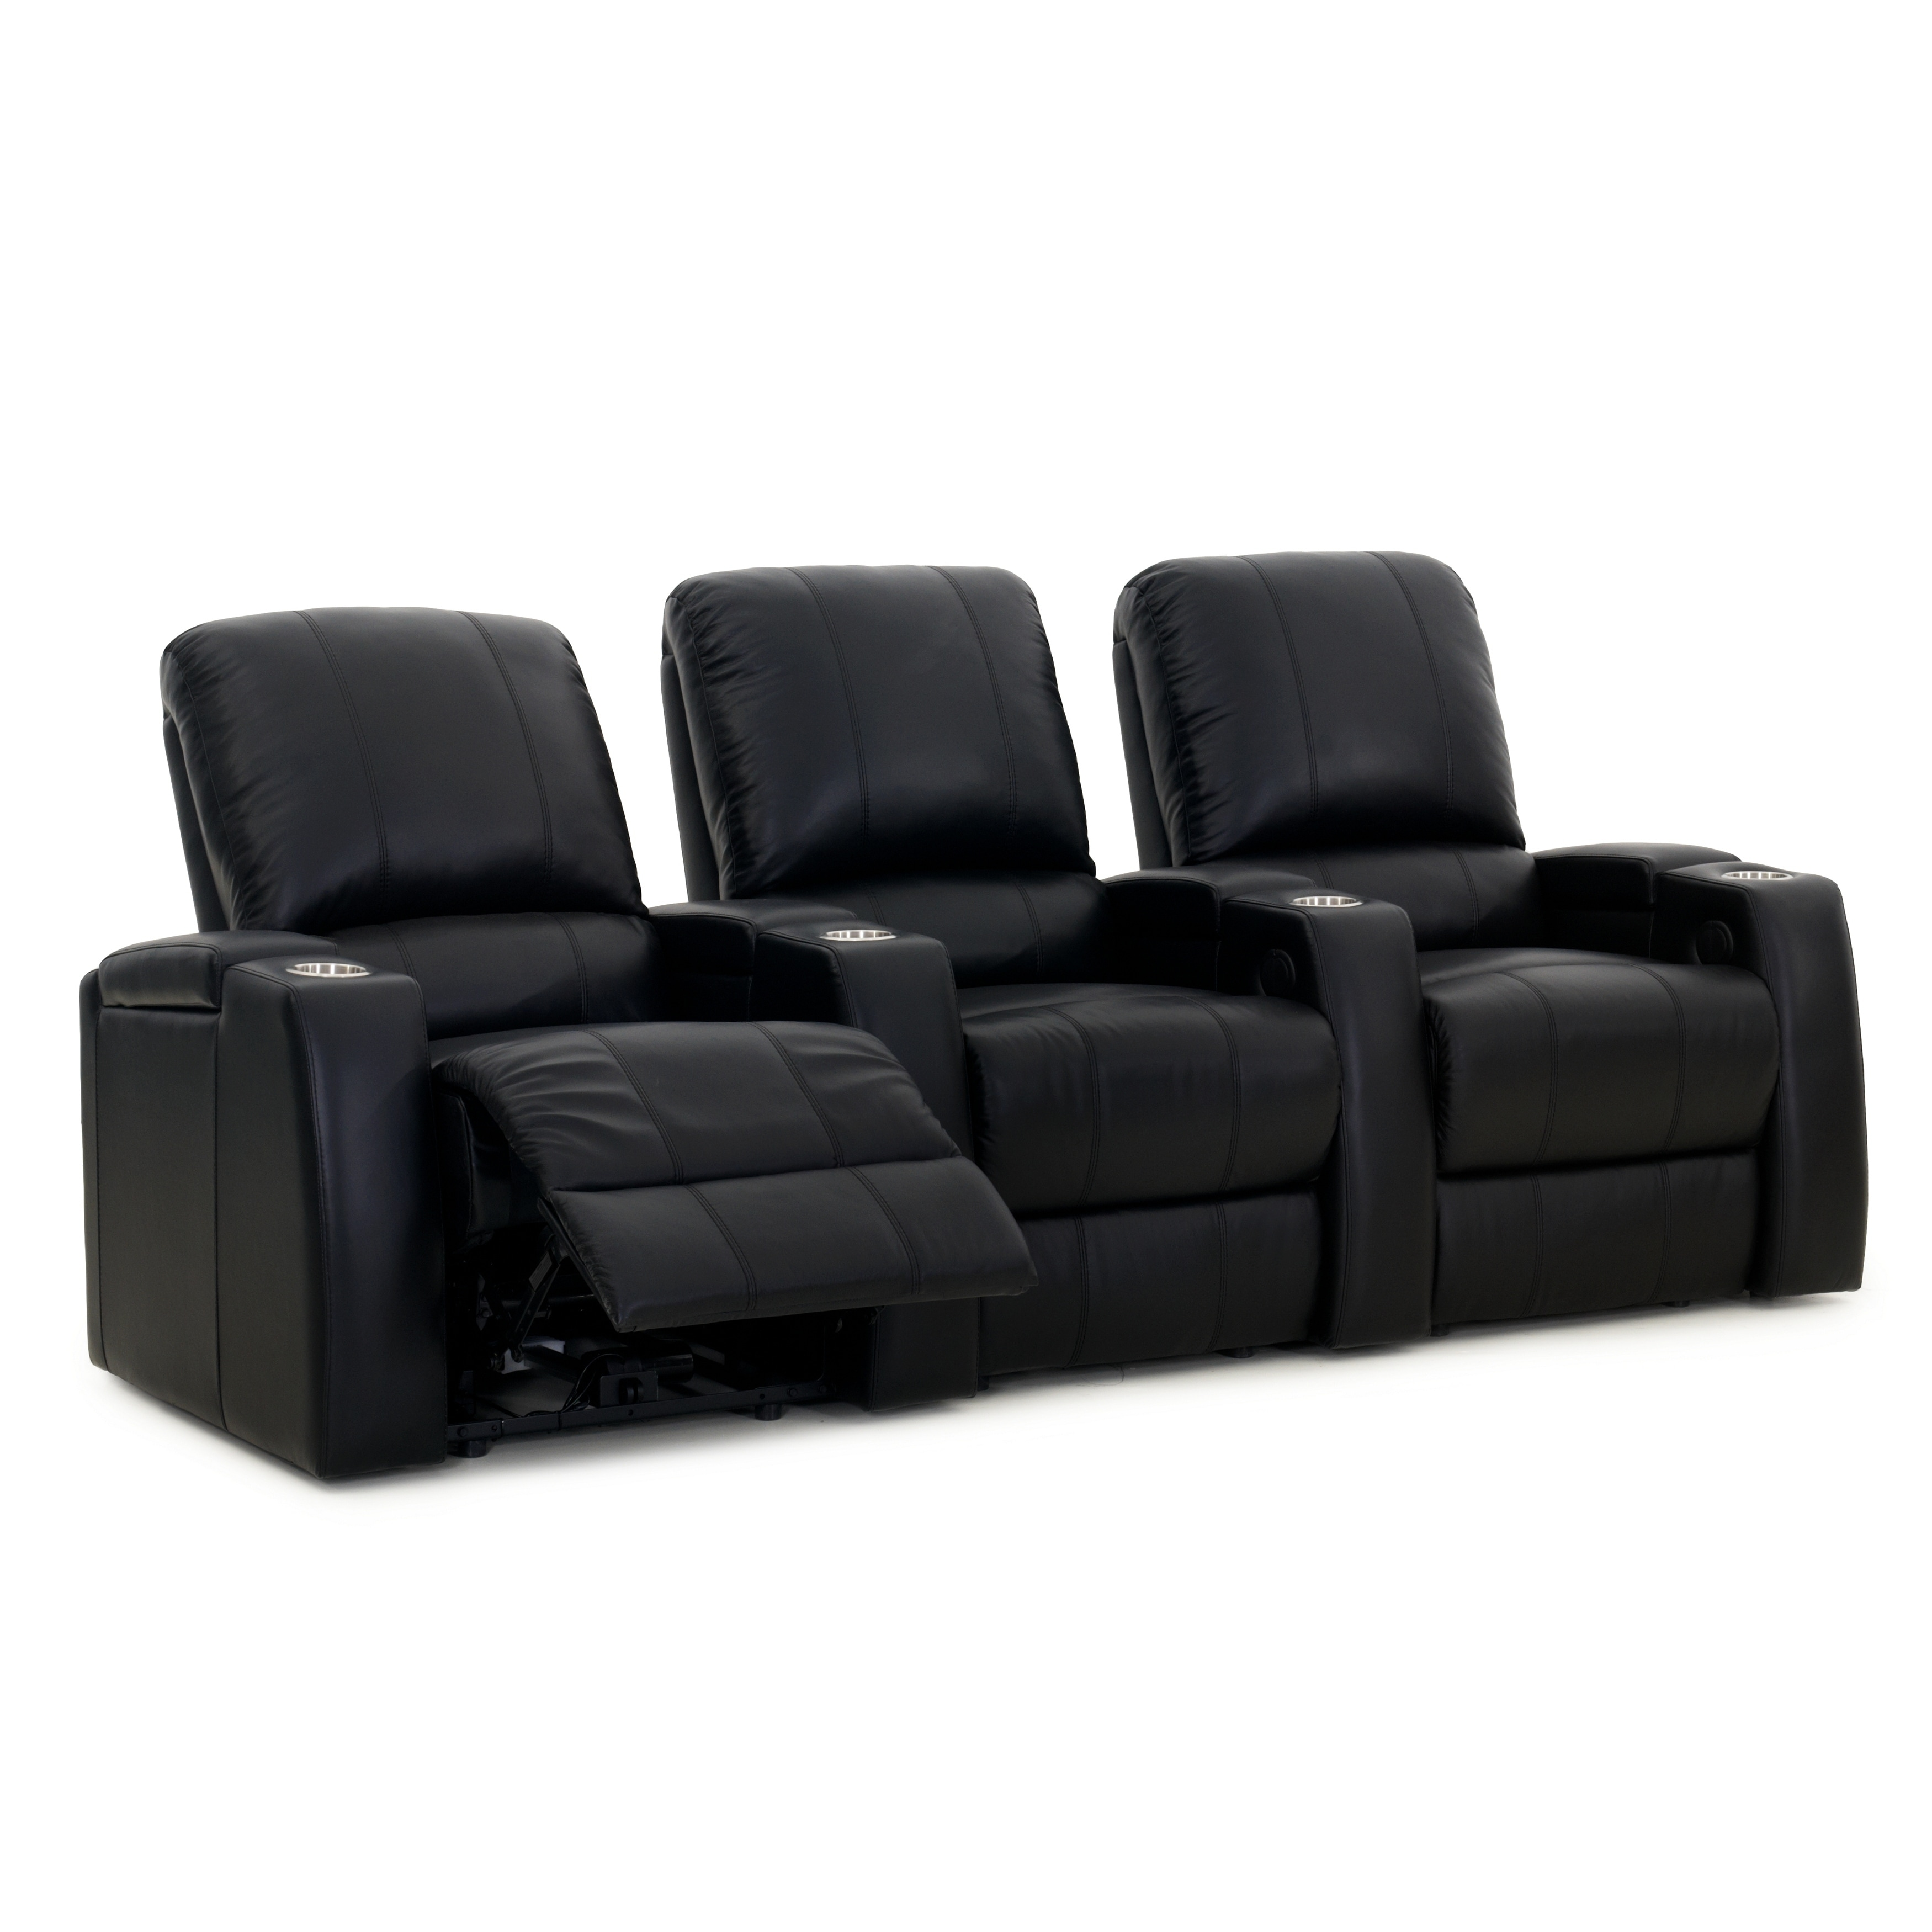 Octane Storm XL850 Power Leather Recliner Home Theater Se...